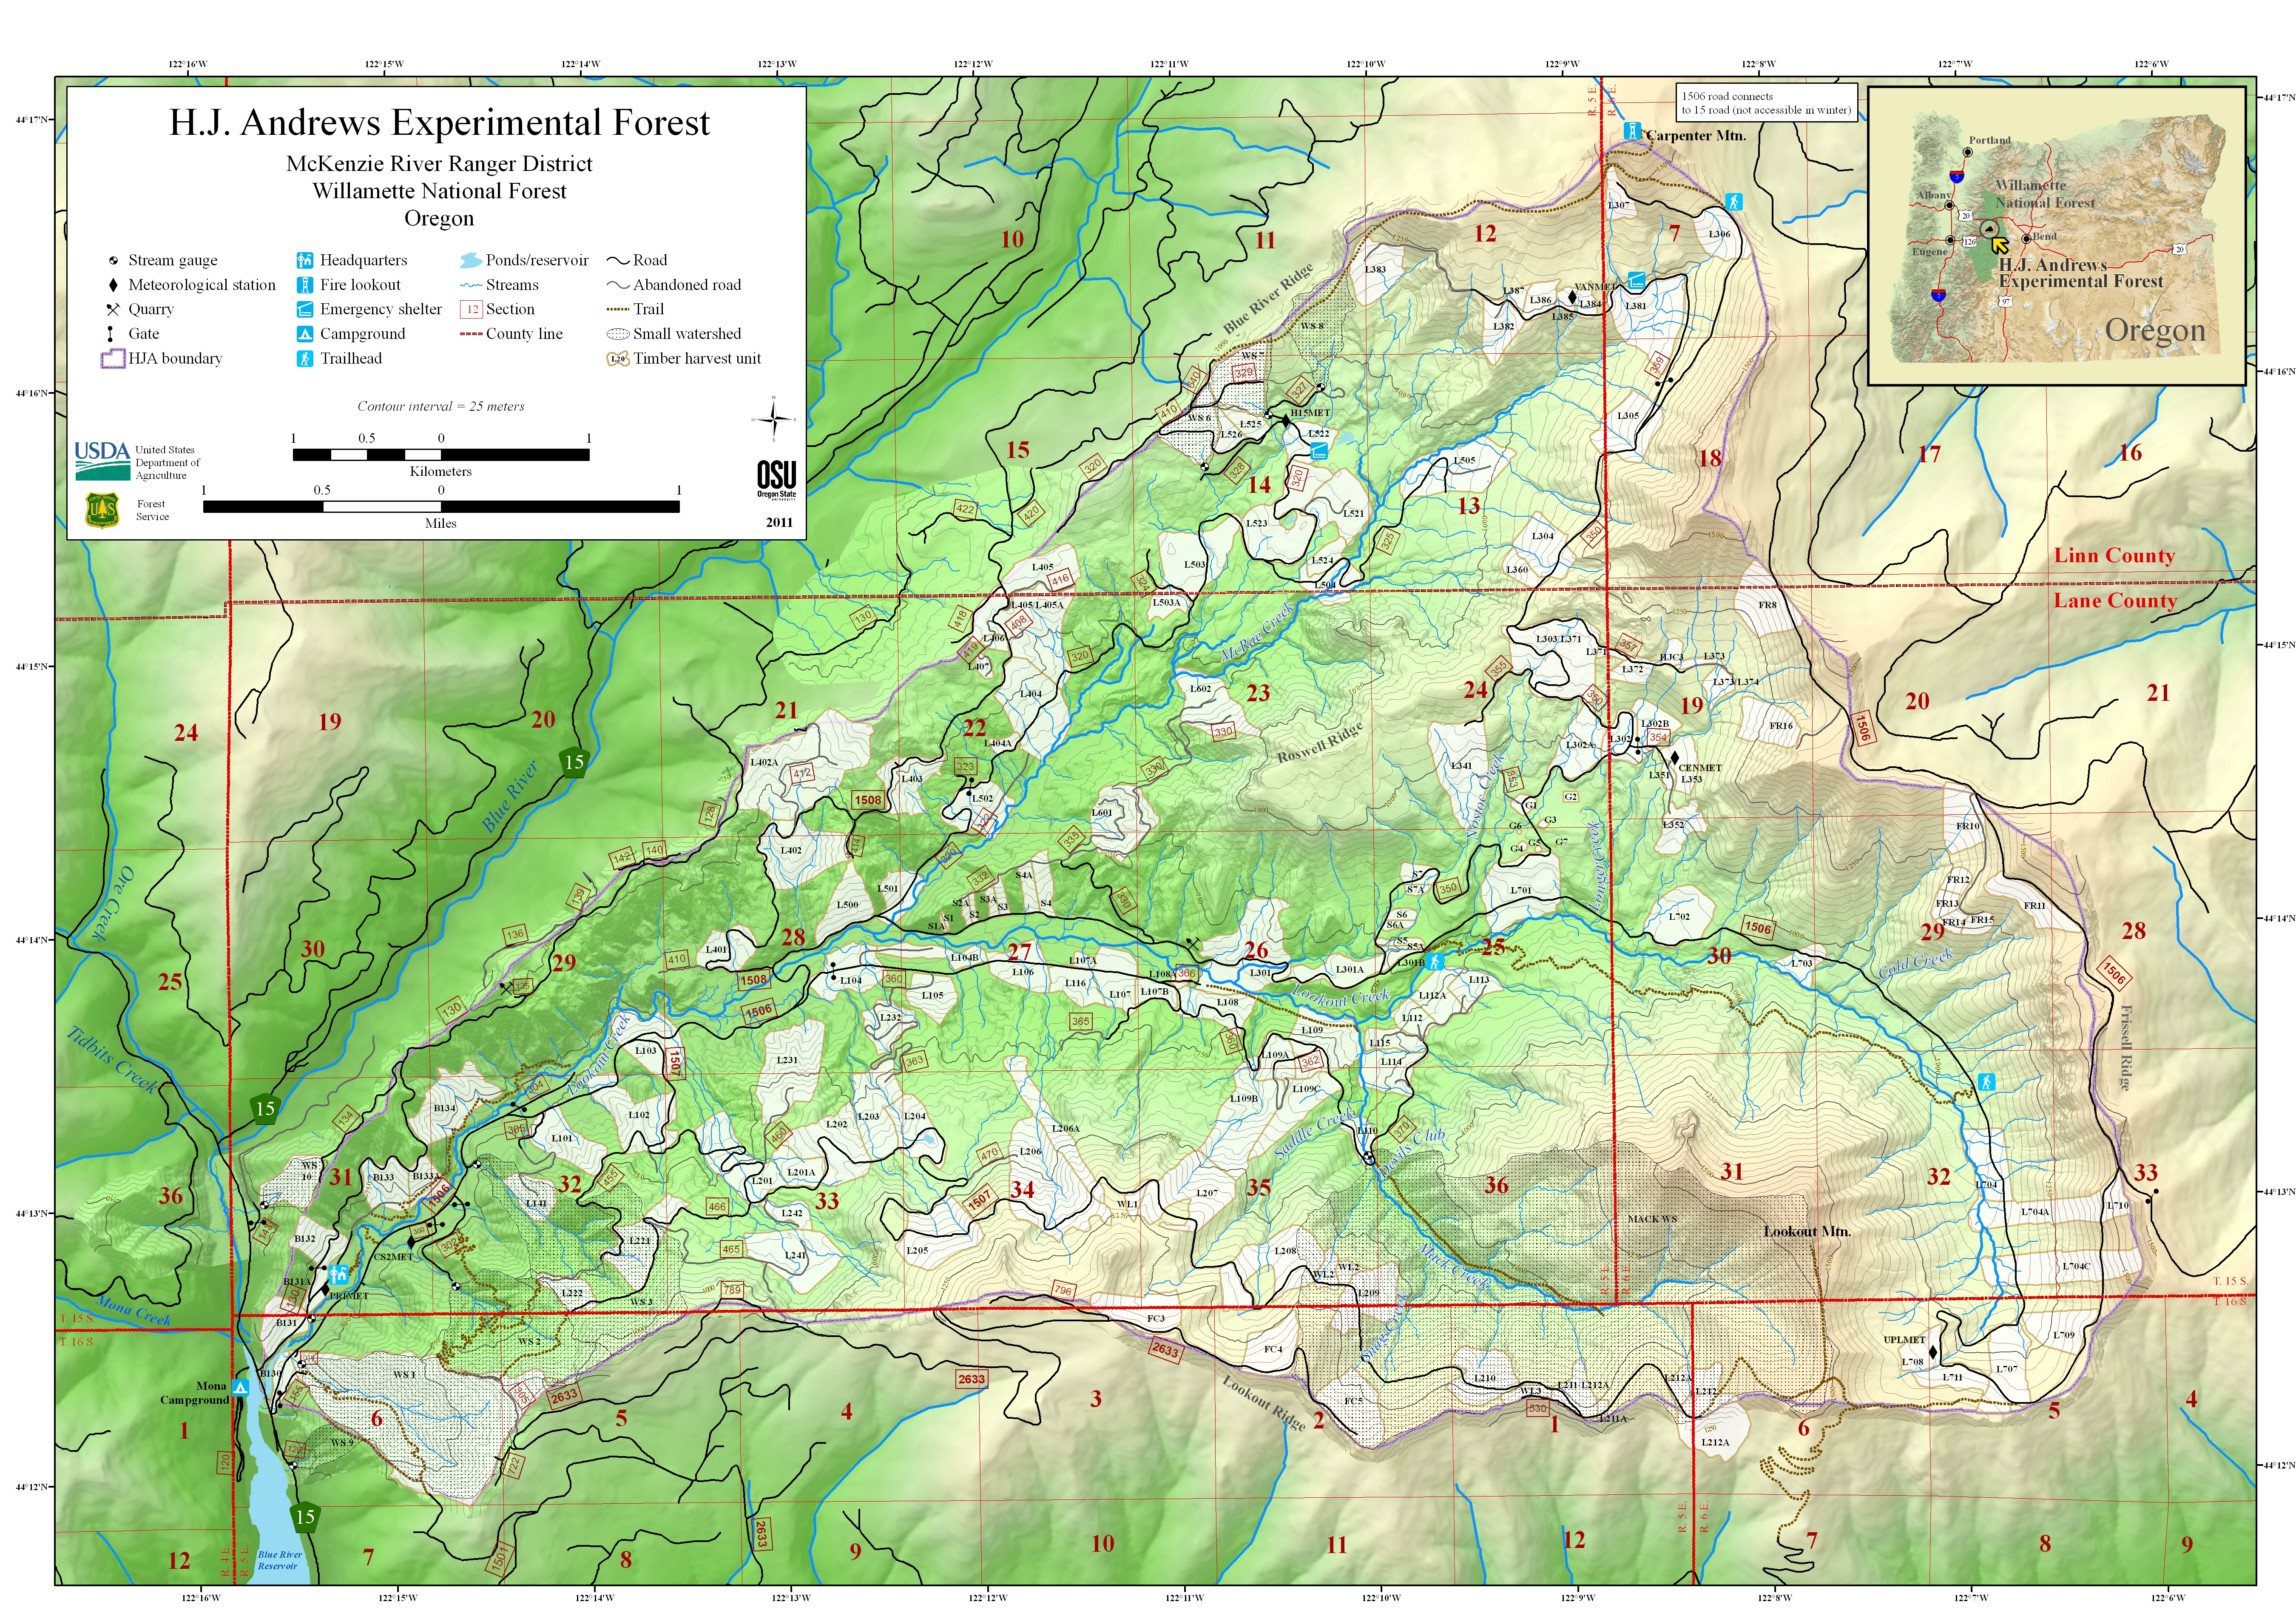 Maps | H.J. Andrews Experimental Forest - Oregon State University